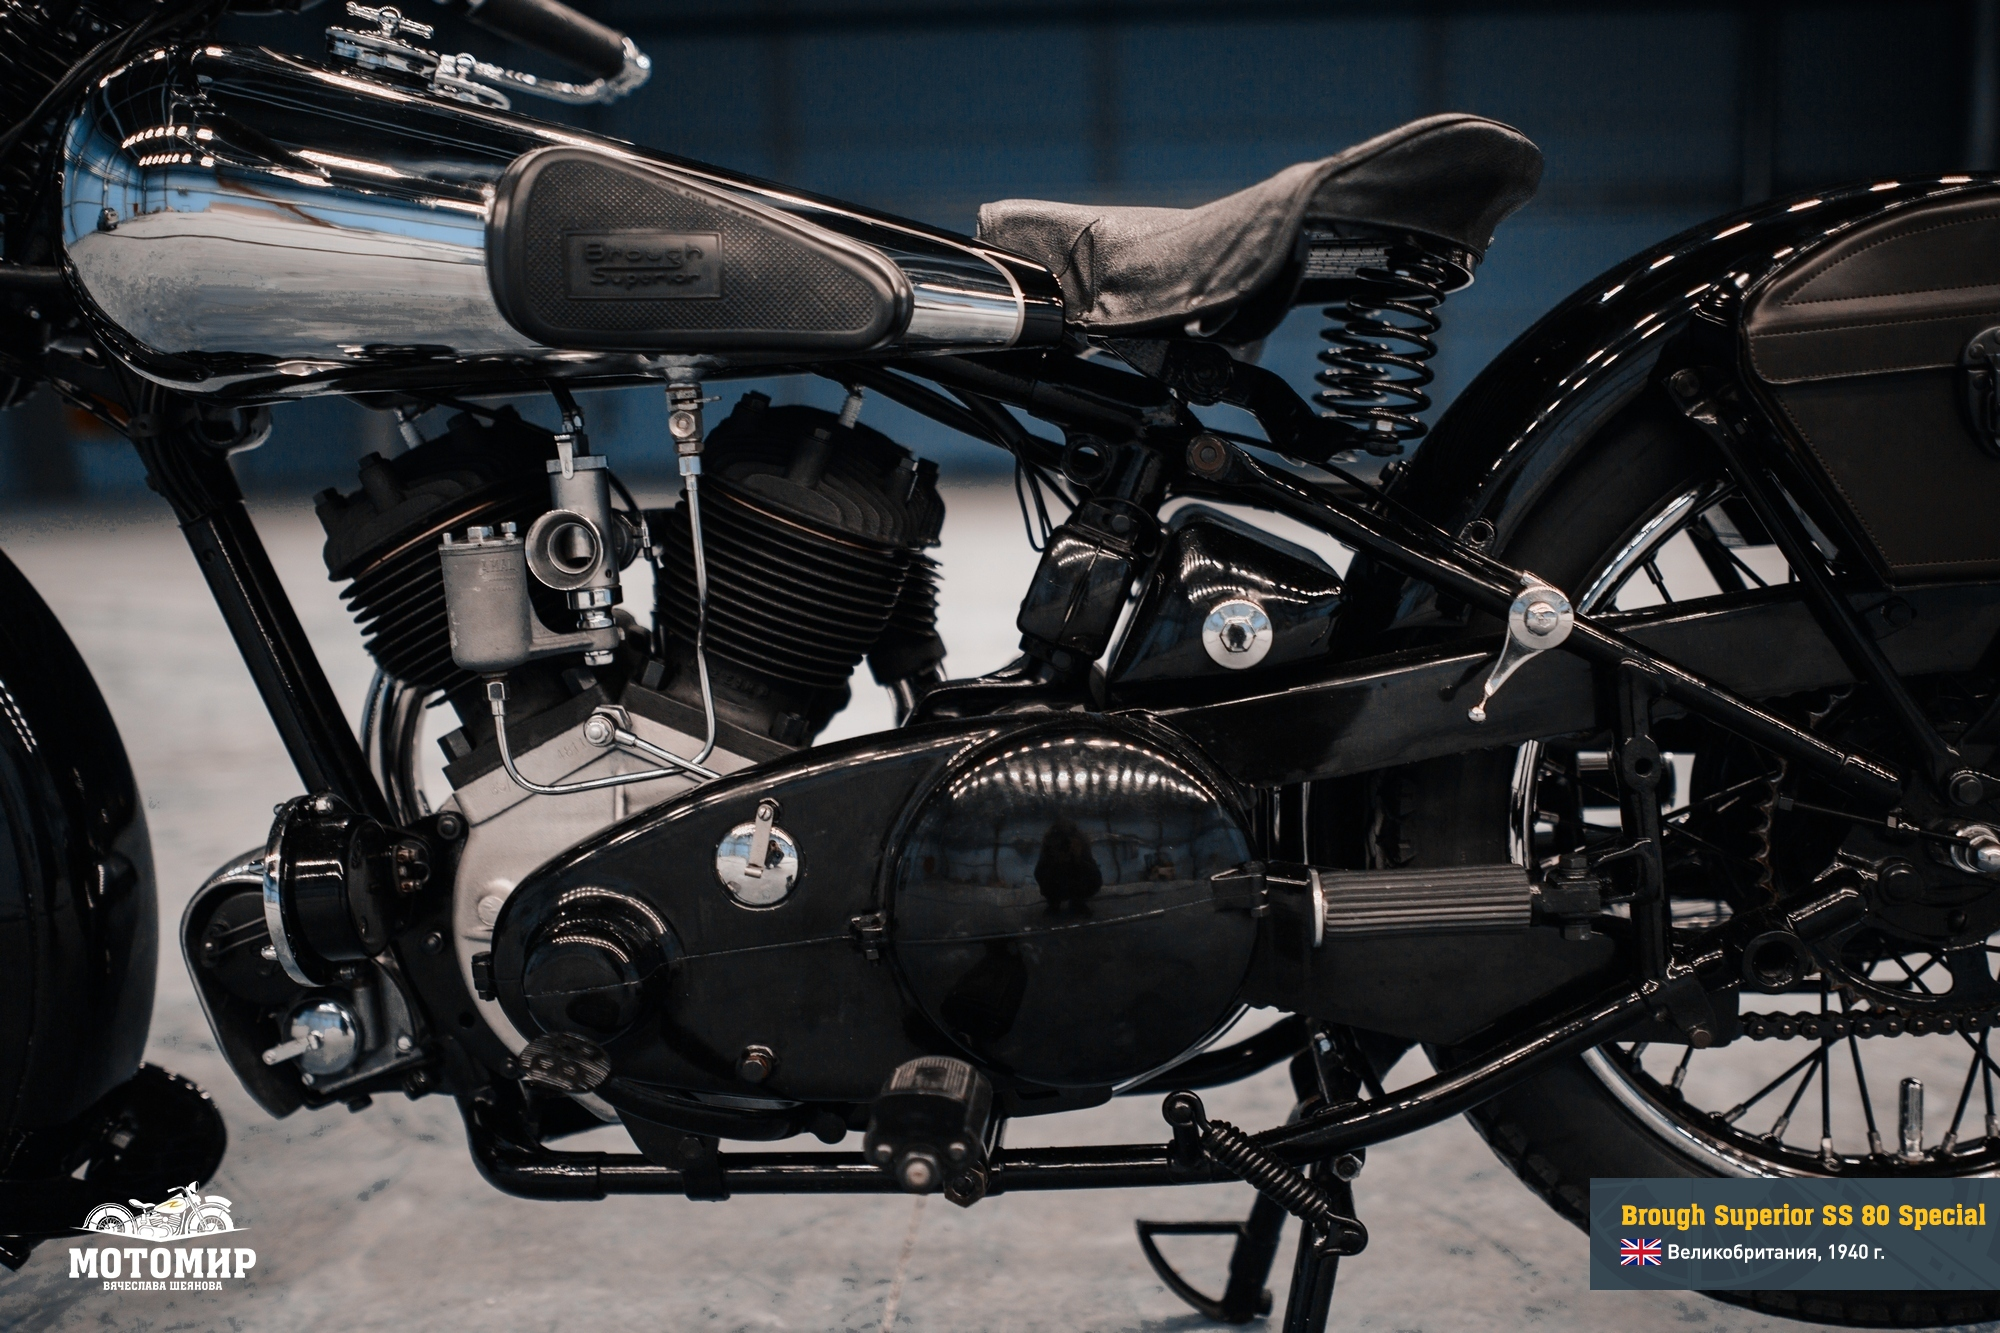 brough-superior-ss-80-201502-web-22